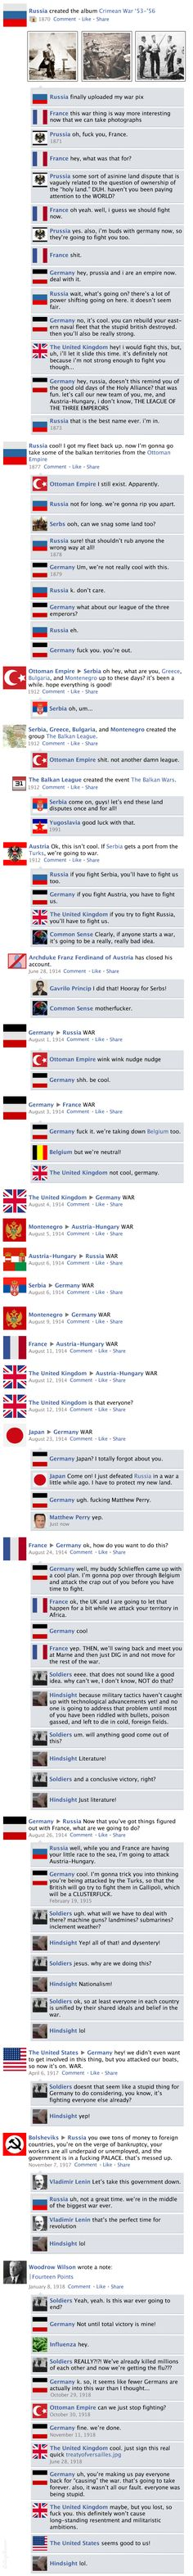 Facebook News Feed History of the World > WWI